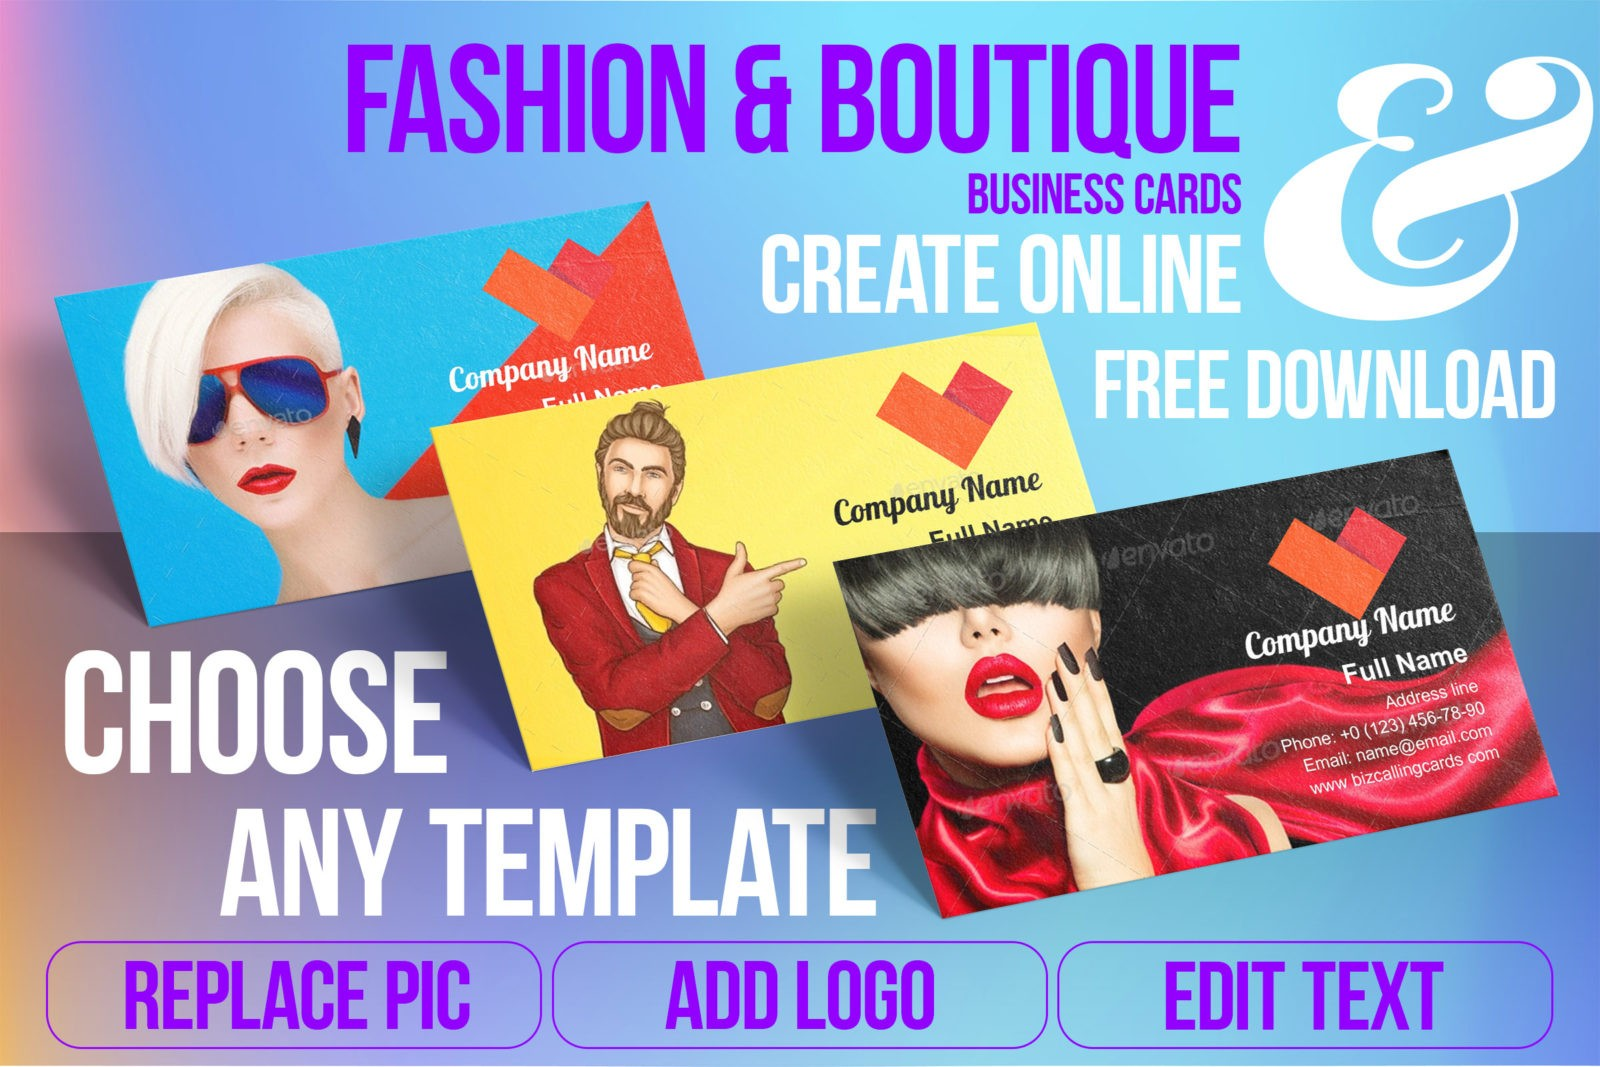 Business Card Templates For Fashion & Boutique Free Download